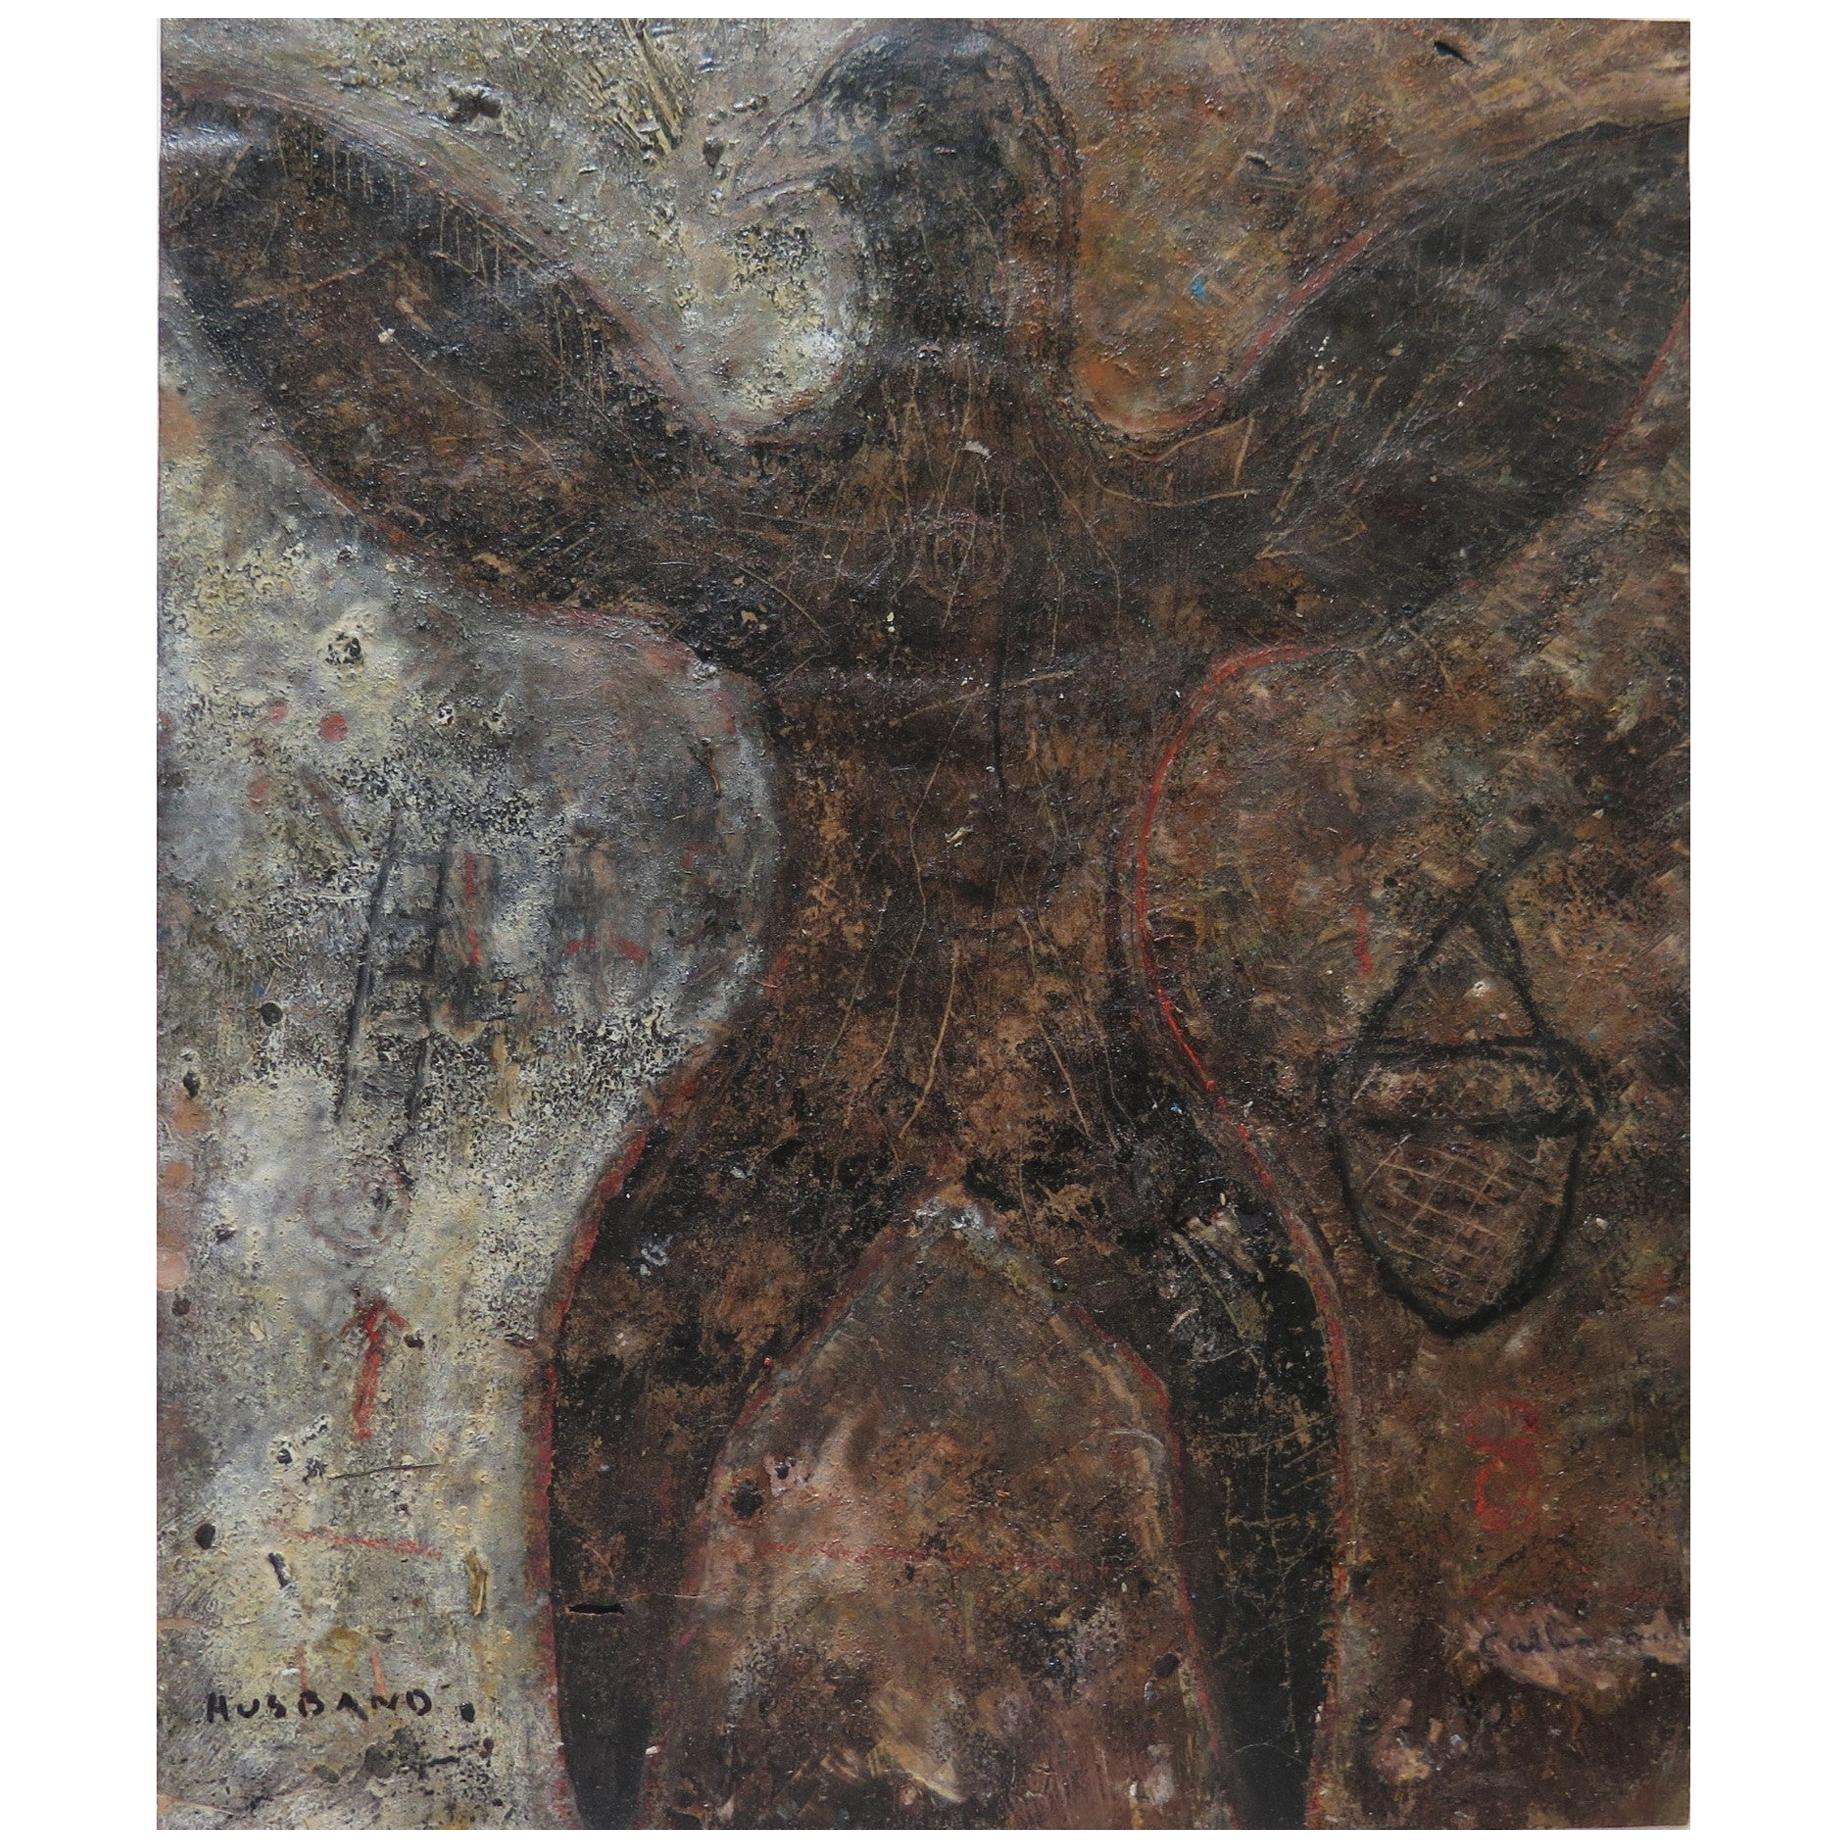 Larry Calkins Painting on Paper Husband